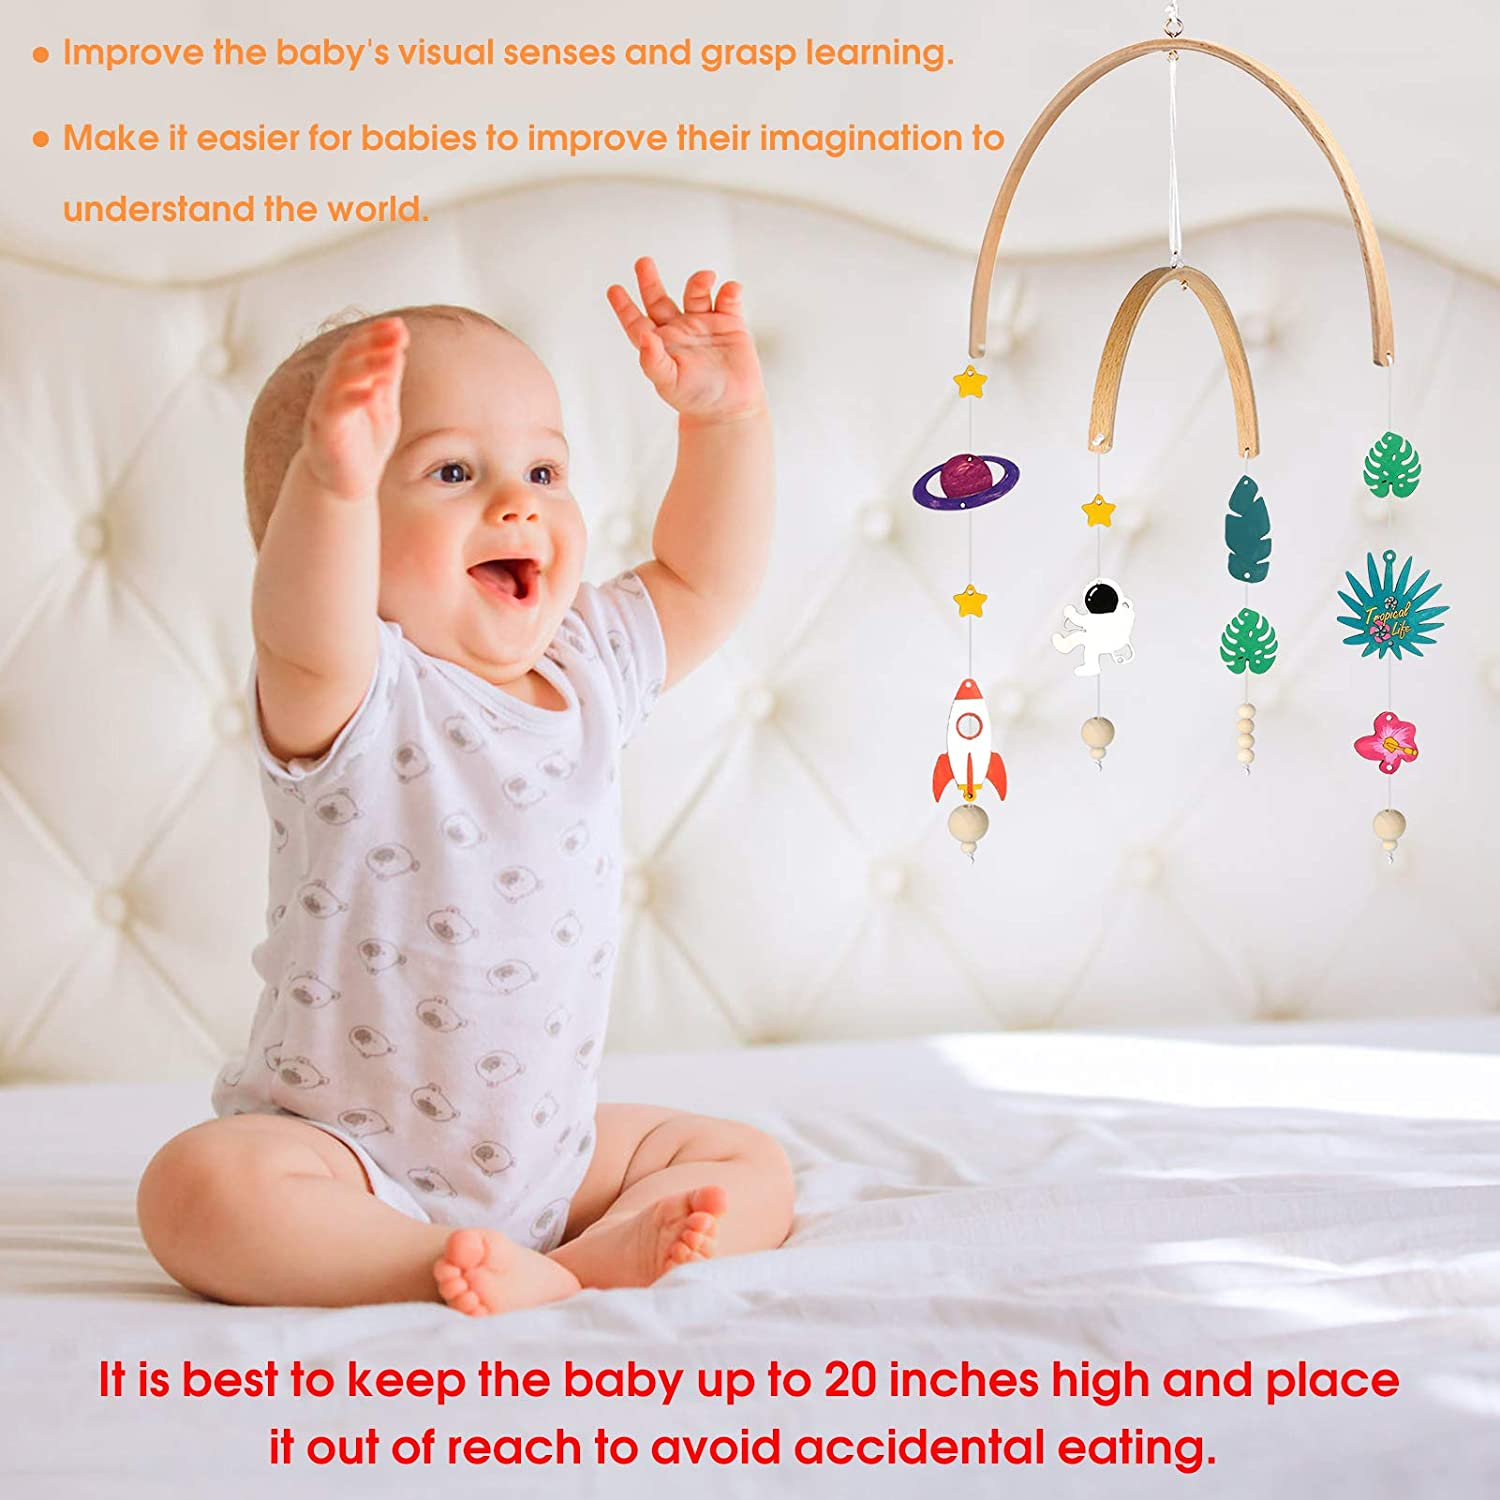 Infant Bed Decoration Toy Hanging Rotating Toys Outgeek DIY Nursery Baby Crib Mobile Kit Multifunctional Creative Decorative Wood Hanging Mobile Toys Hanging Give Visual Stimulation To Engage Your Newborn